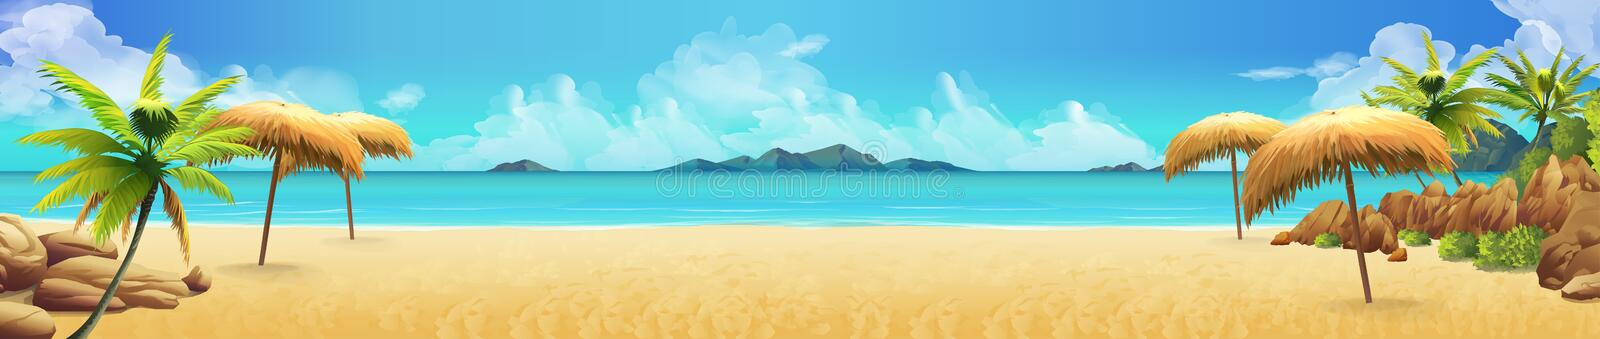 Sea panorama, Tropical beach. Vector royalty free illustration